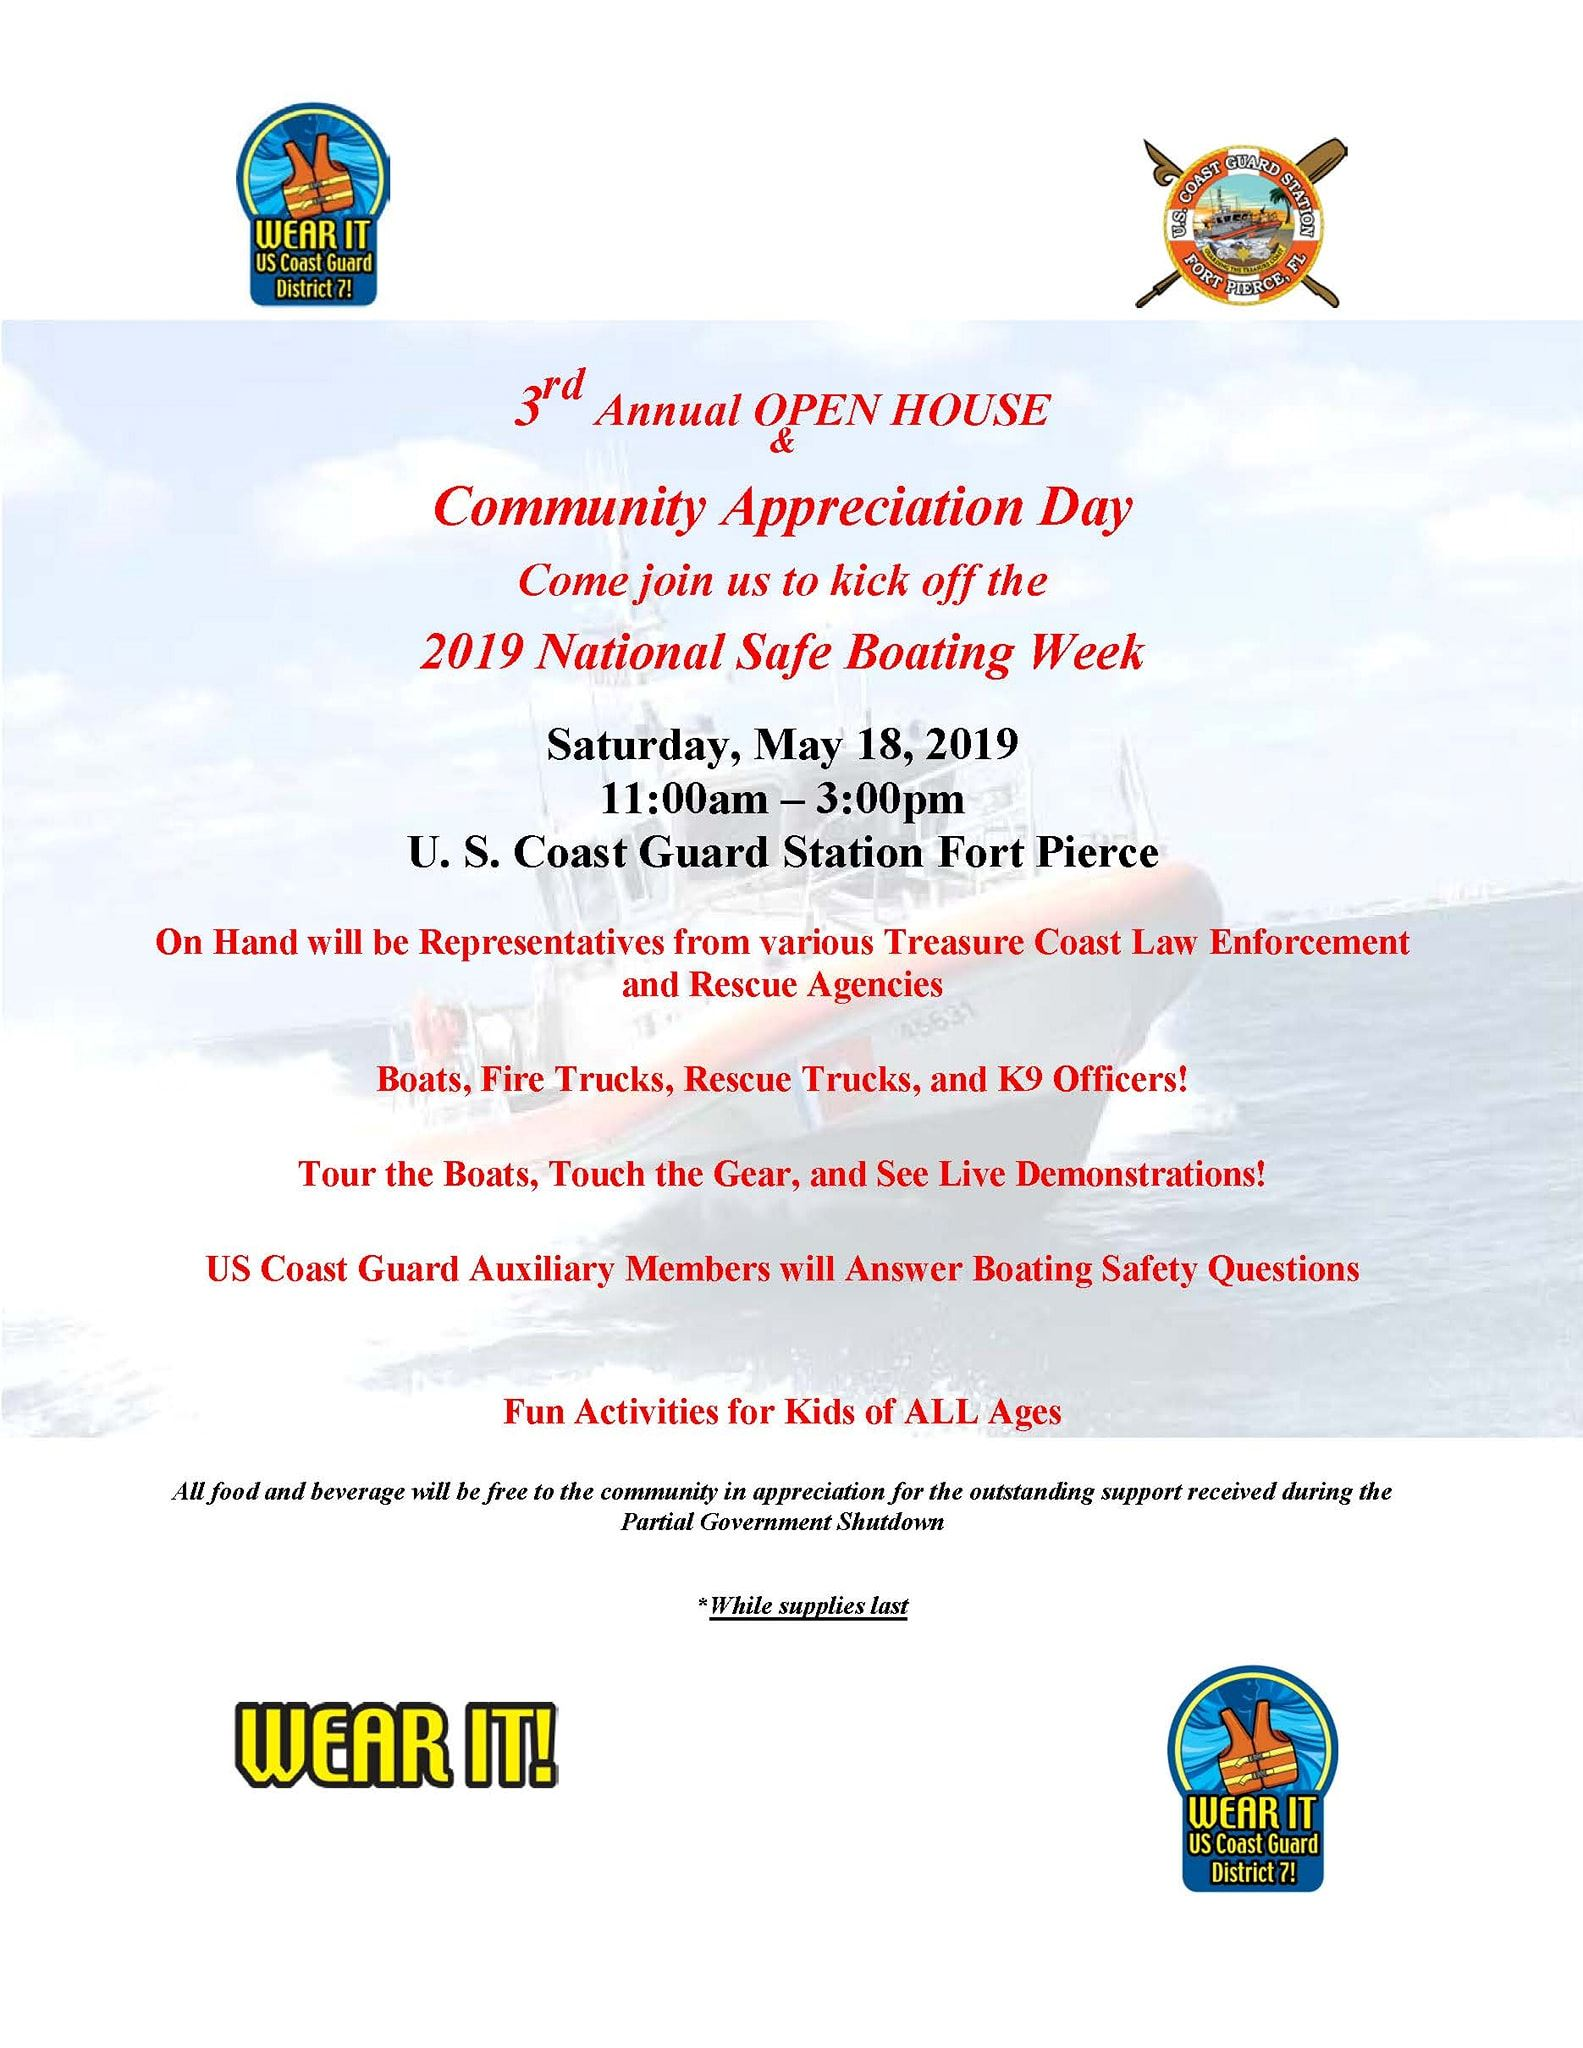 Coast Guard Open House Flyer